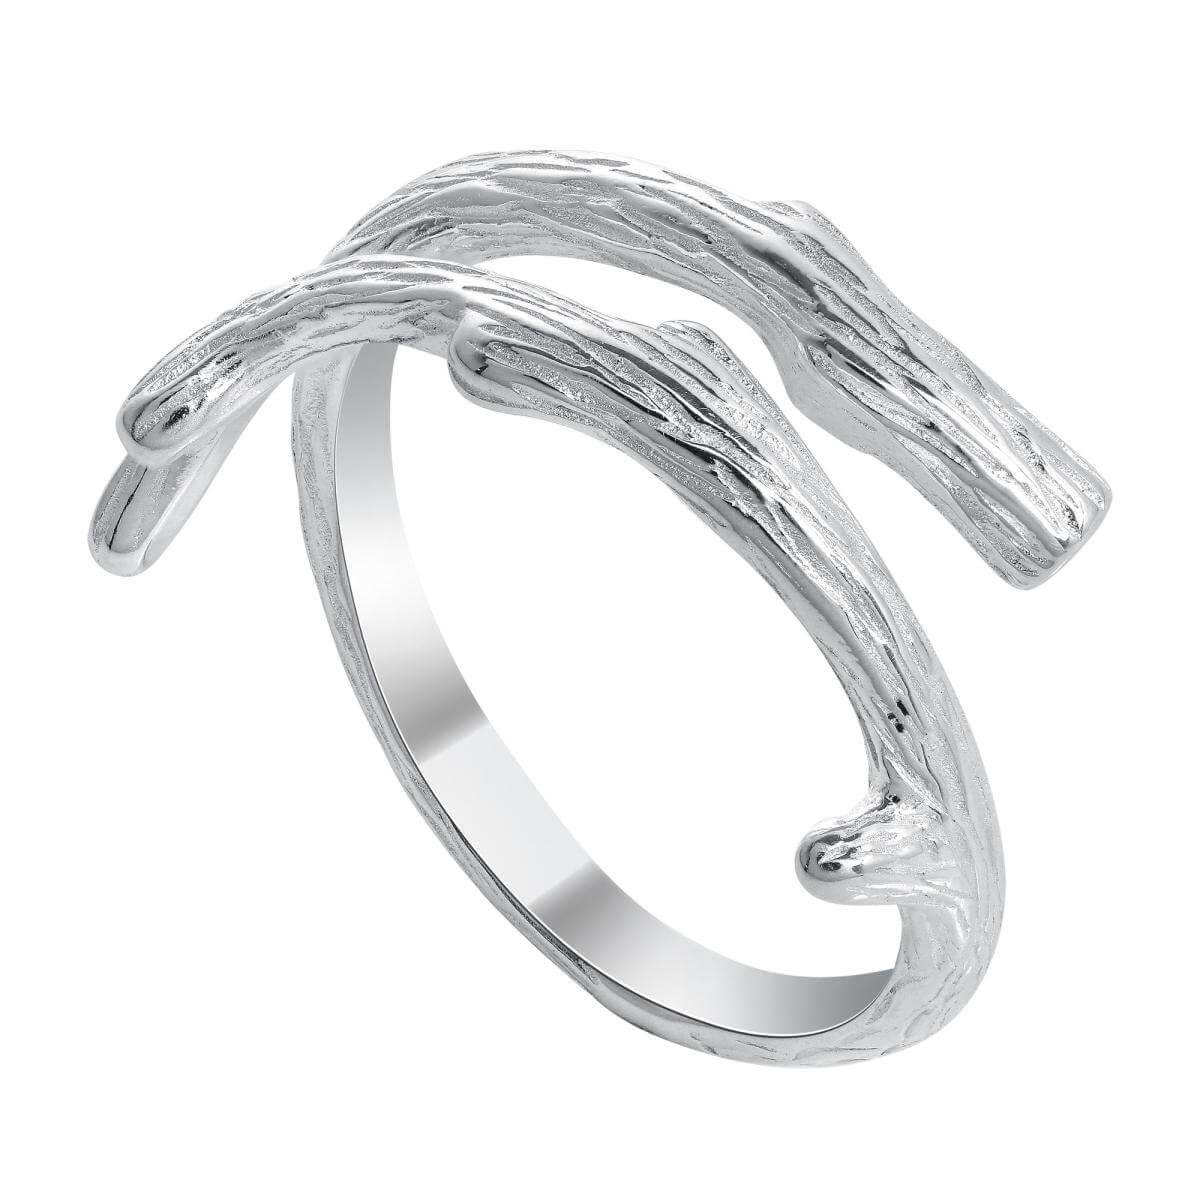 Sterling Silver Detailed Tree Branch Adjustable Midi Toe Ring